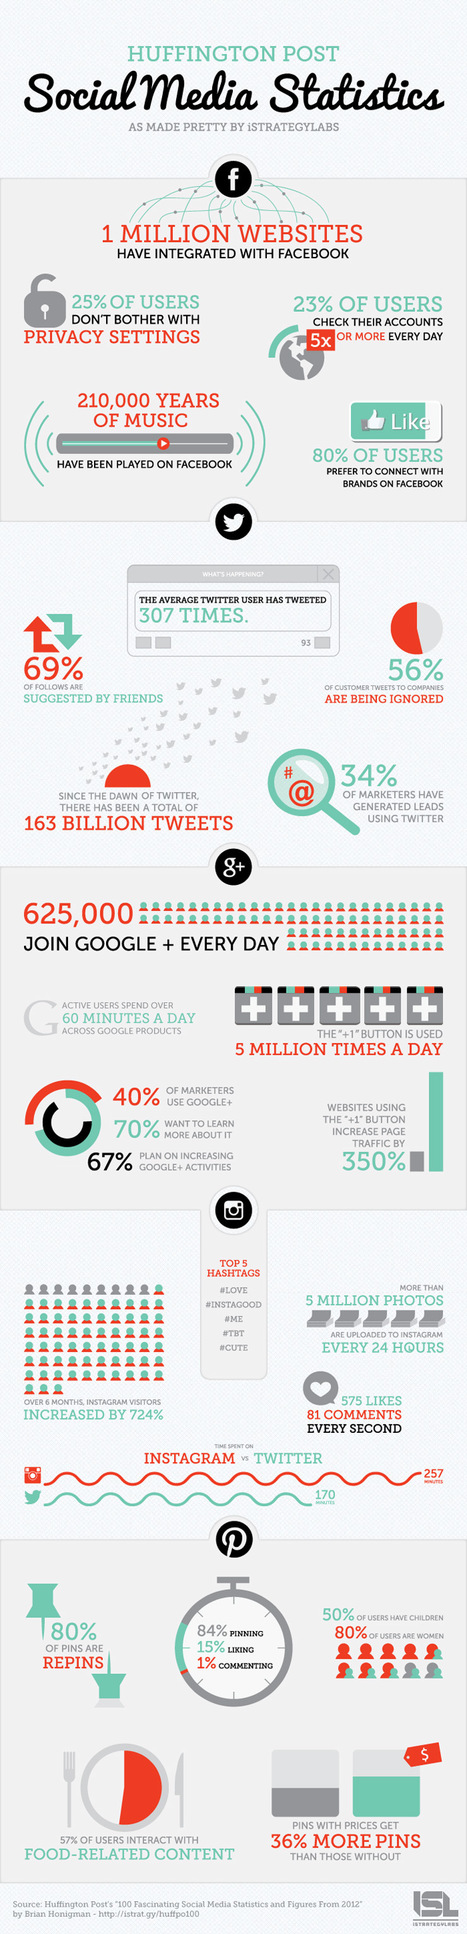 The Amazing Social Media Statistics 2012 – infographic /@BerriePelser | Social Mercor | Scoop.it